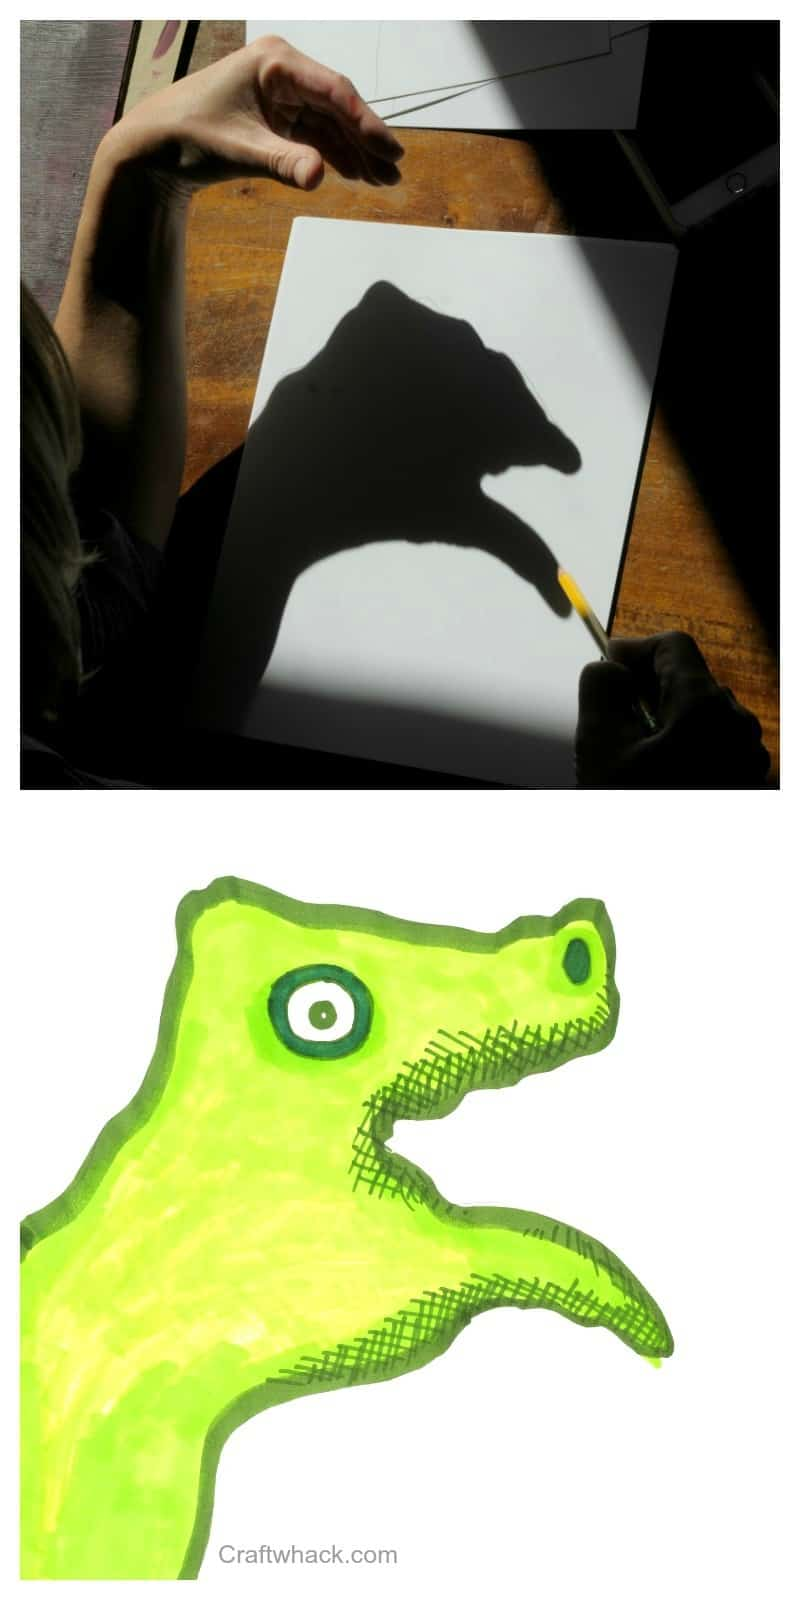 Hey! MAke some hand shadow monster drawings. It's Halloween o'clock!